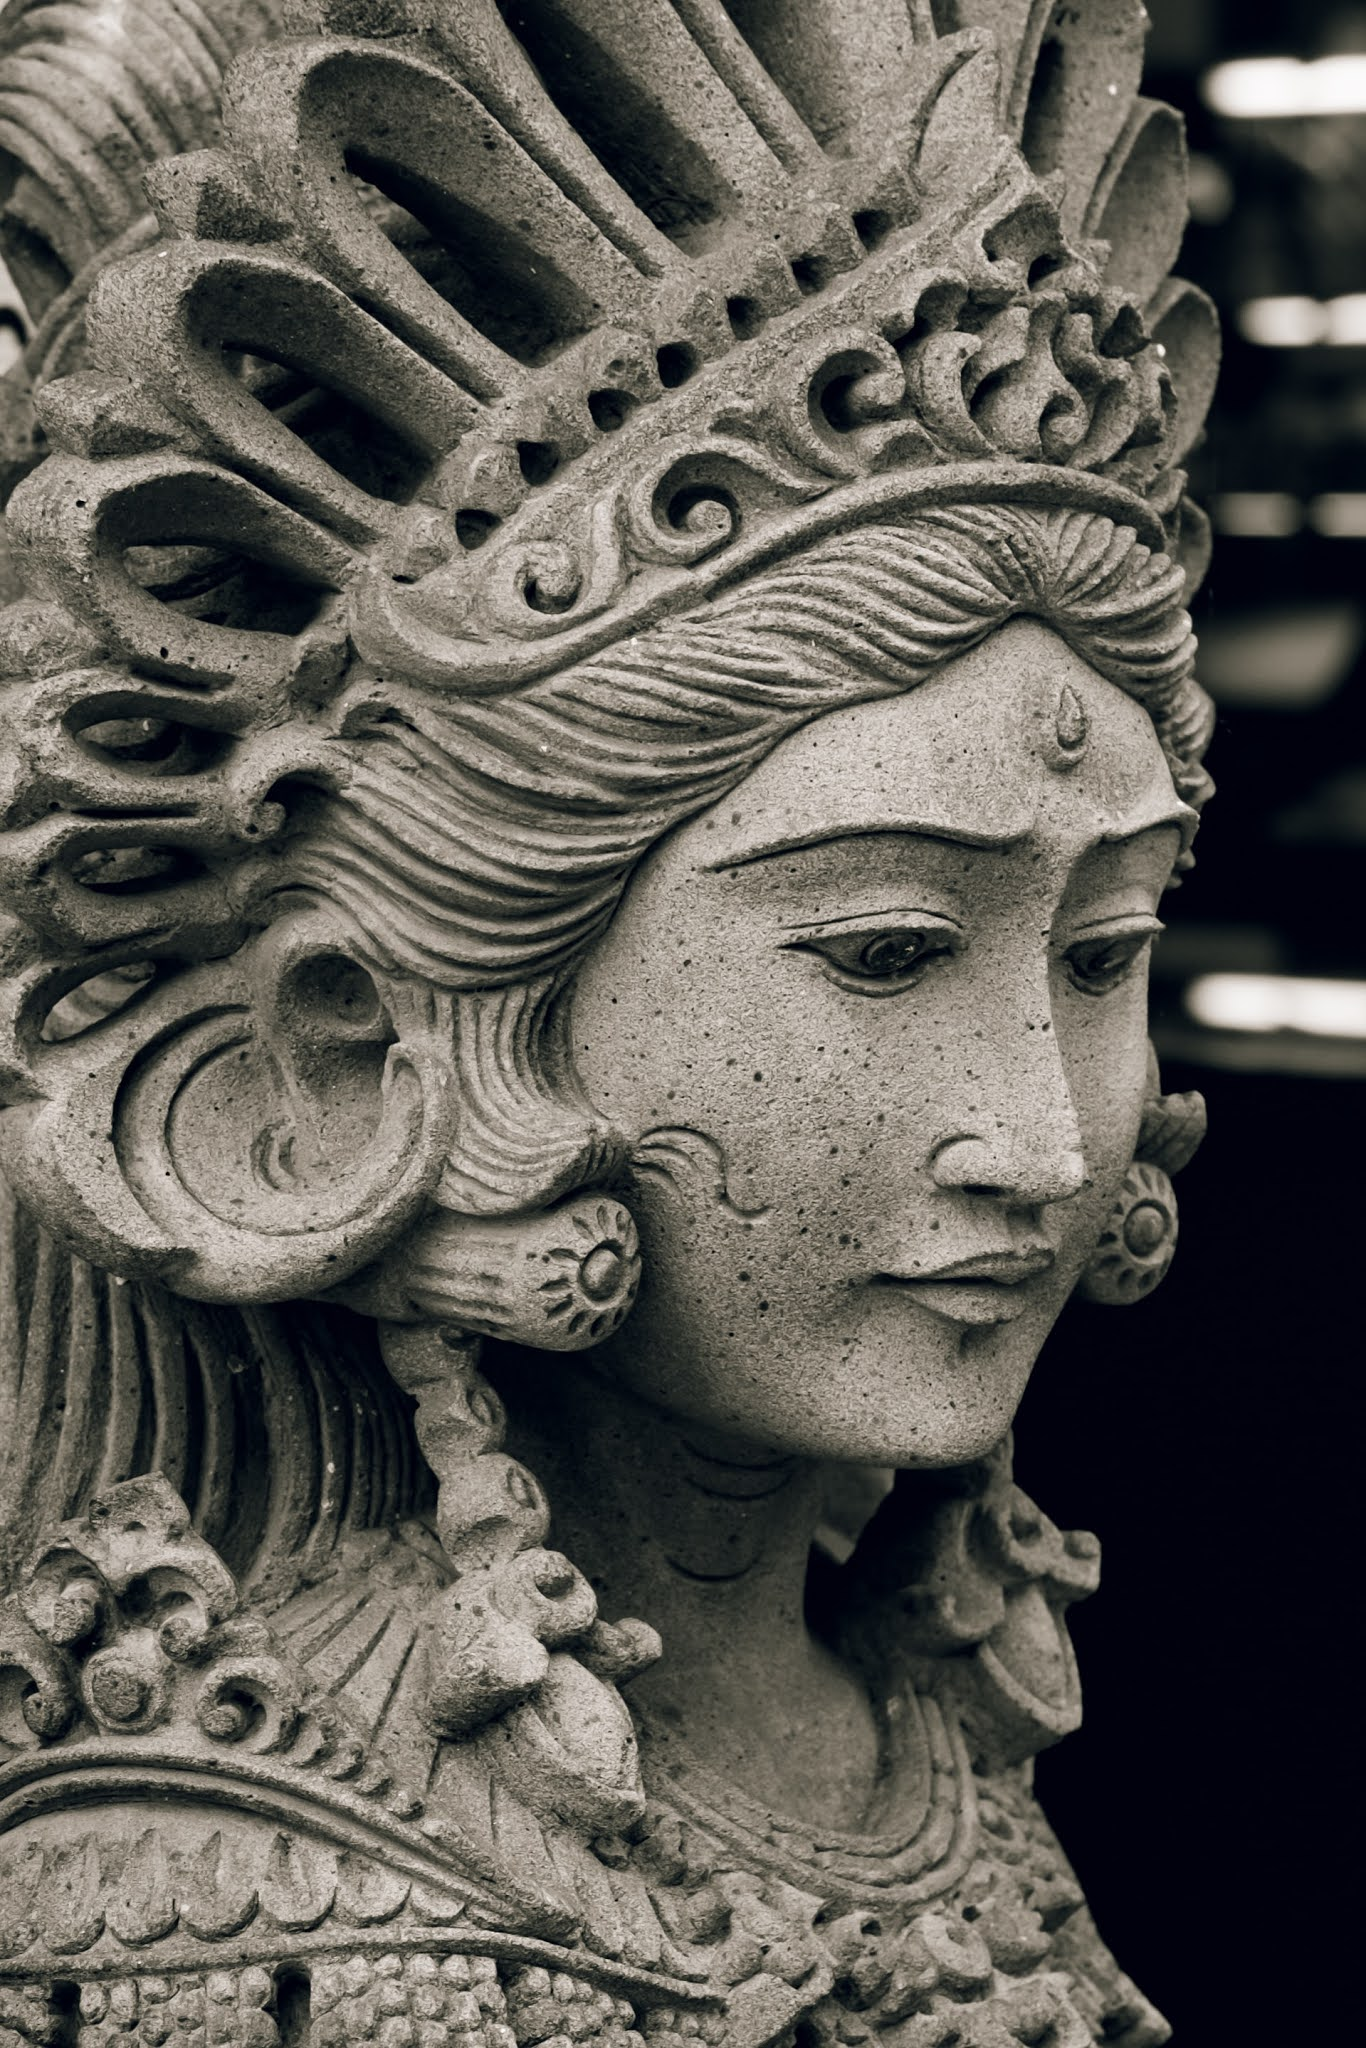 50+ Free The Ancient Times Sculptures HD Images You Want to See